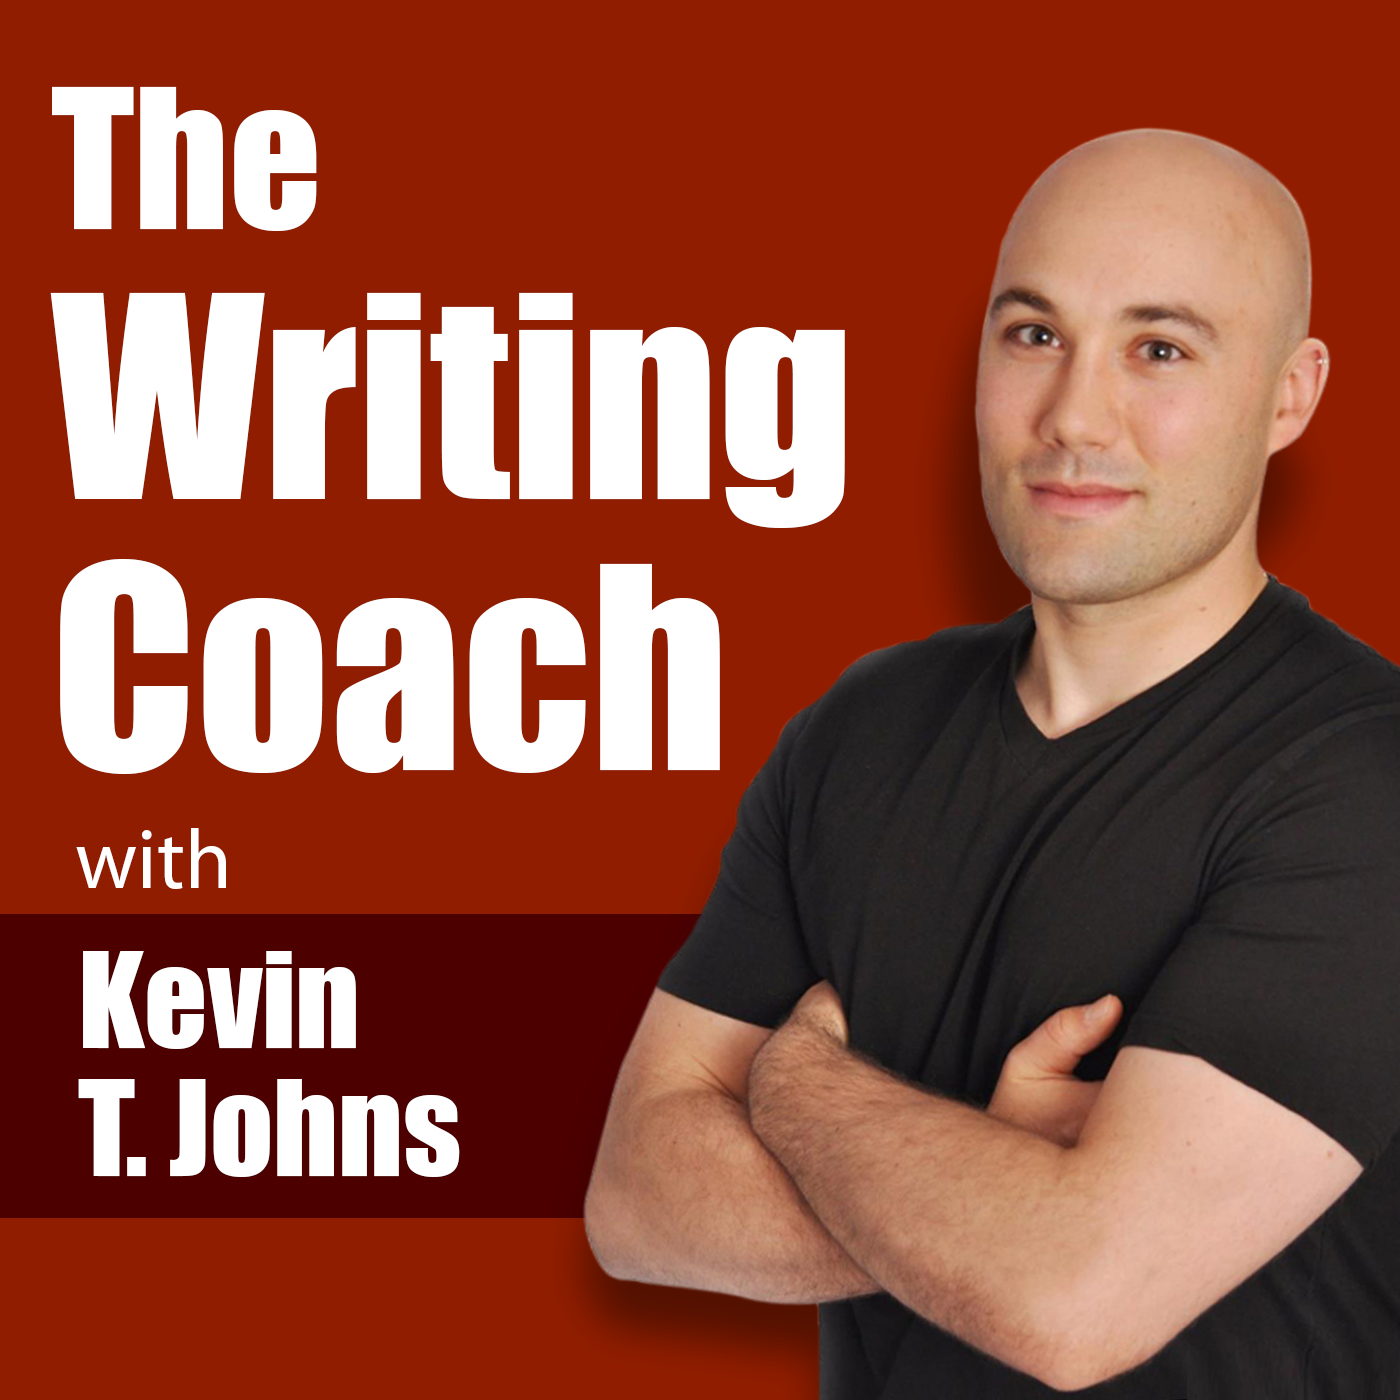 The Writing Coach